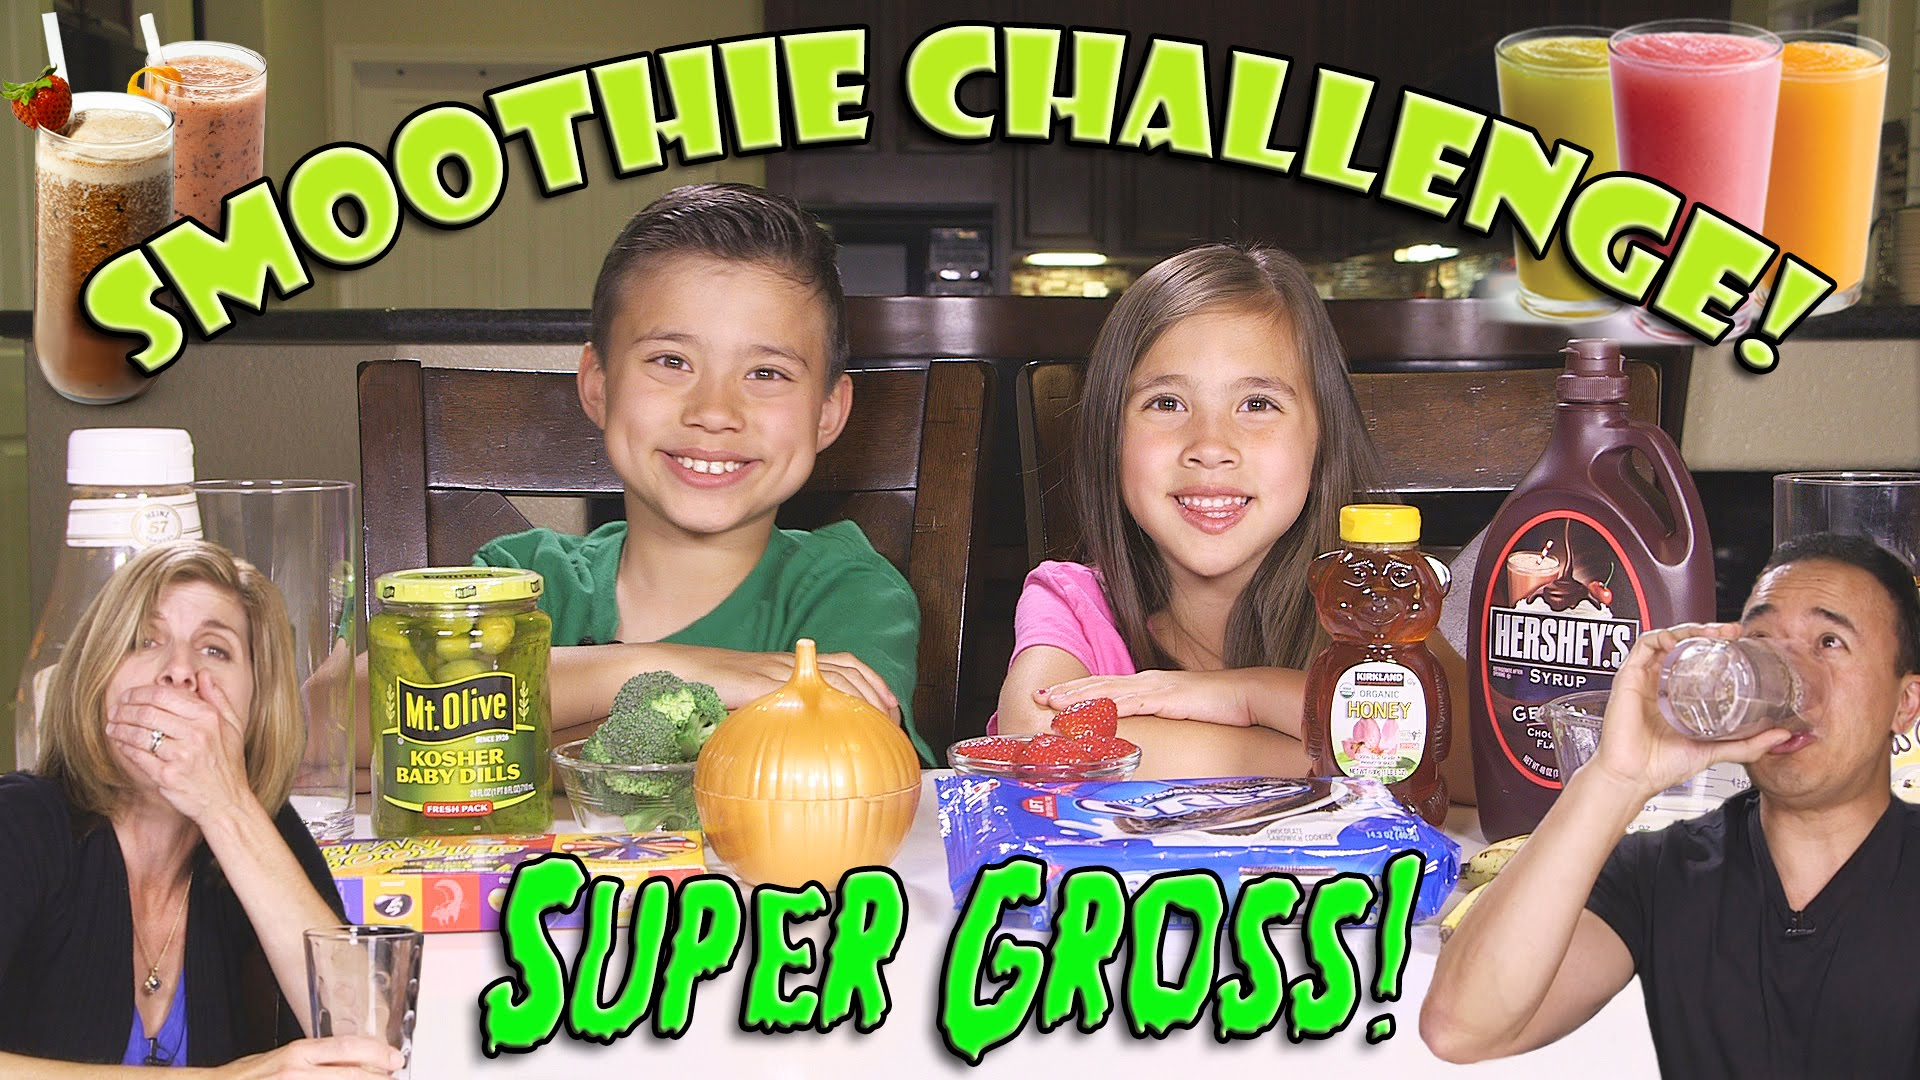 SMOOTHIE CHALLENGE! Super Gross Smoothies – GOTTA DRINK IT ALL! – Whats That Challenge